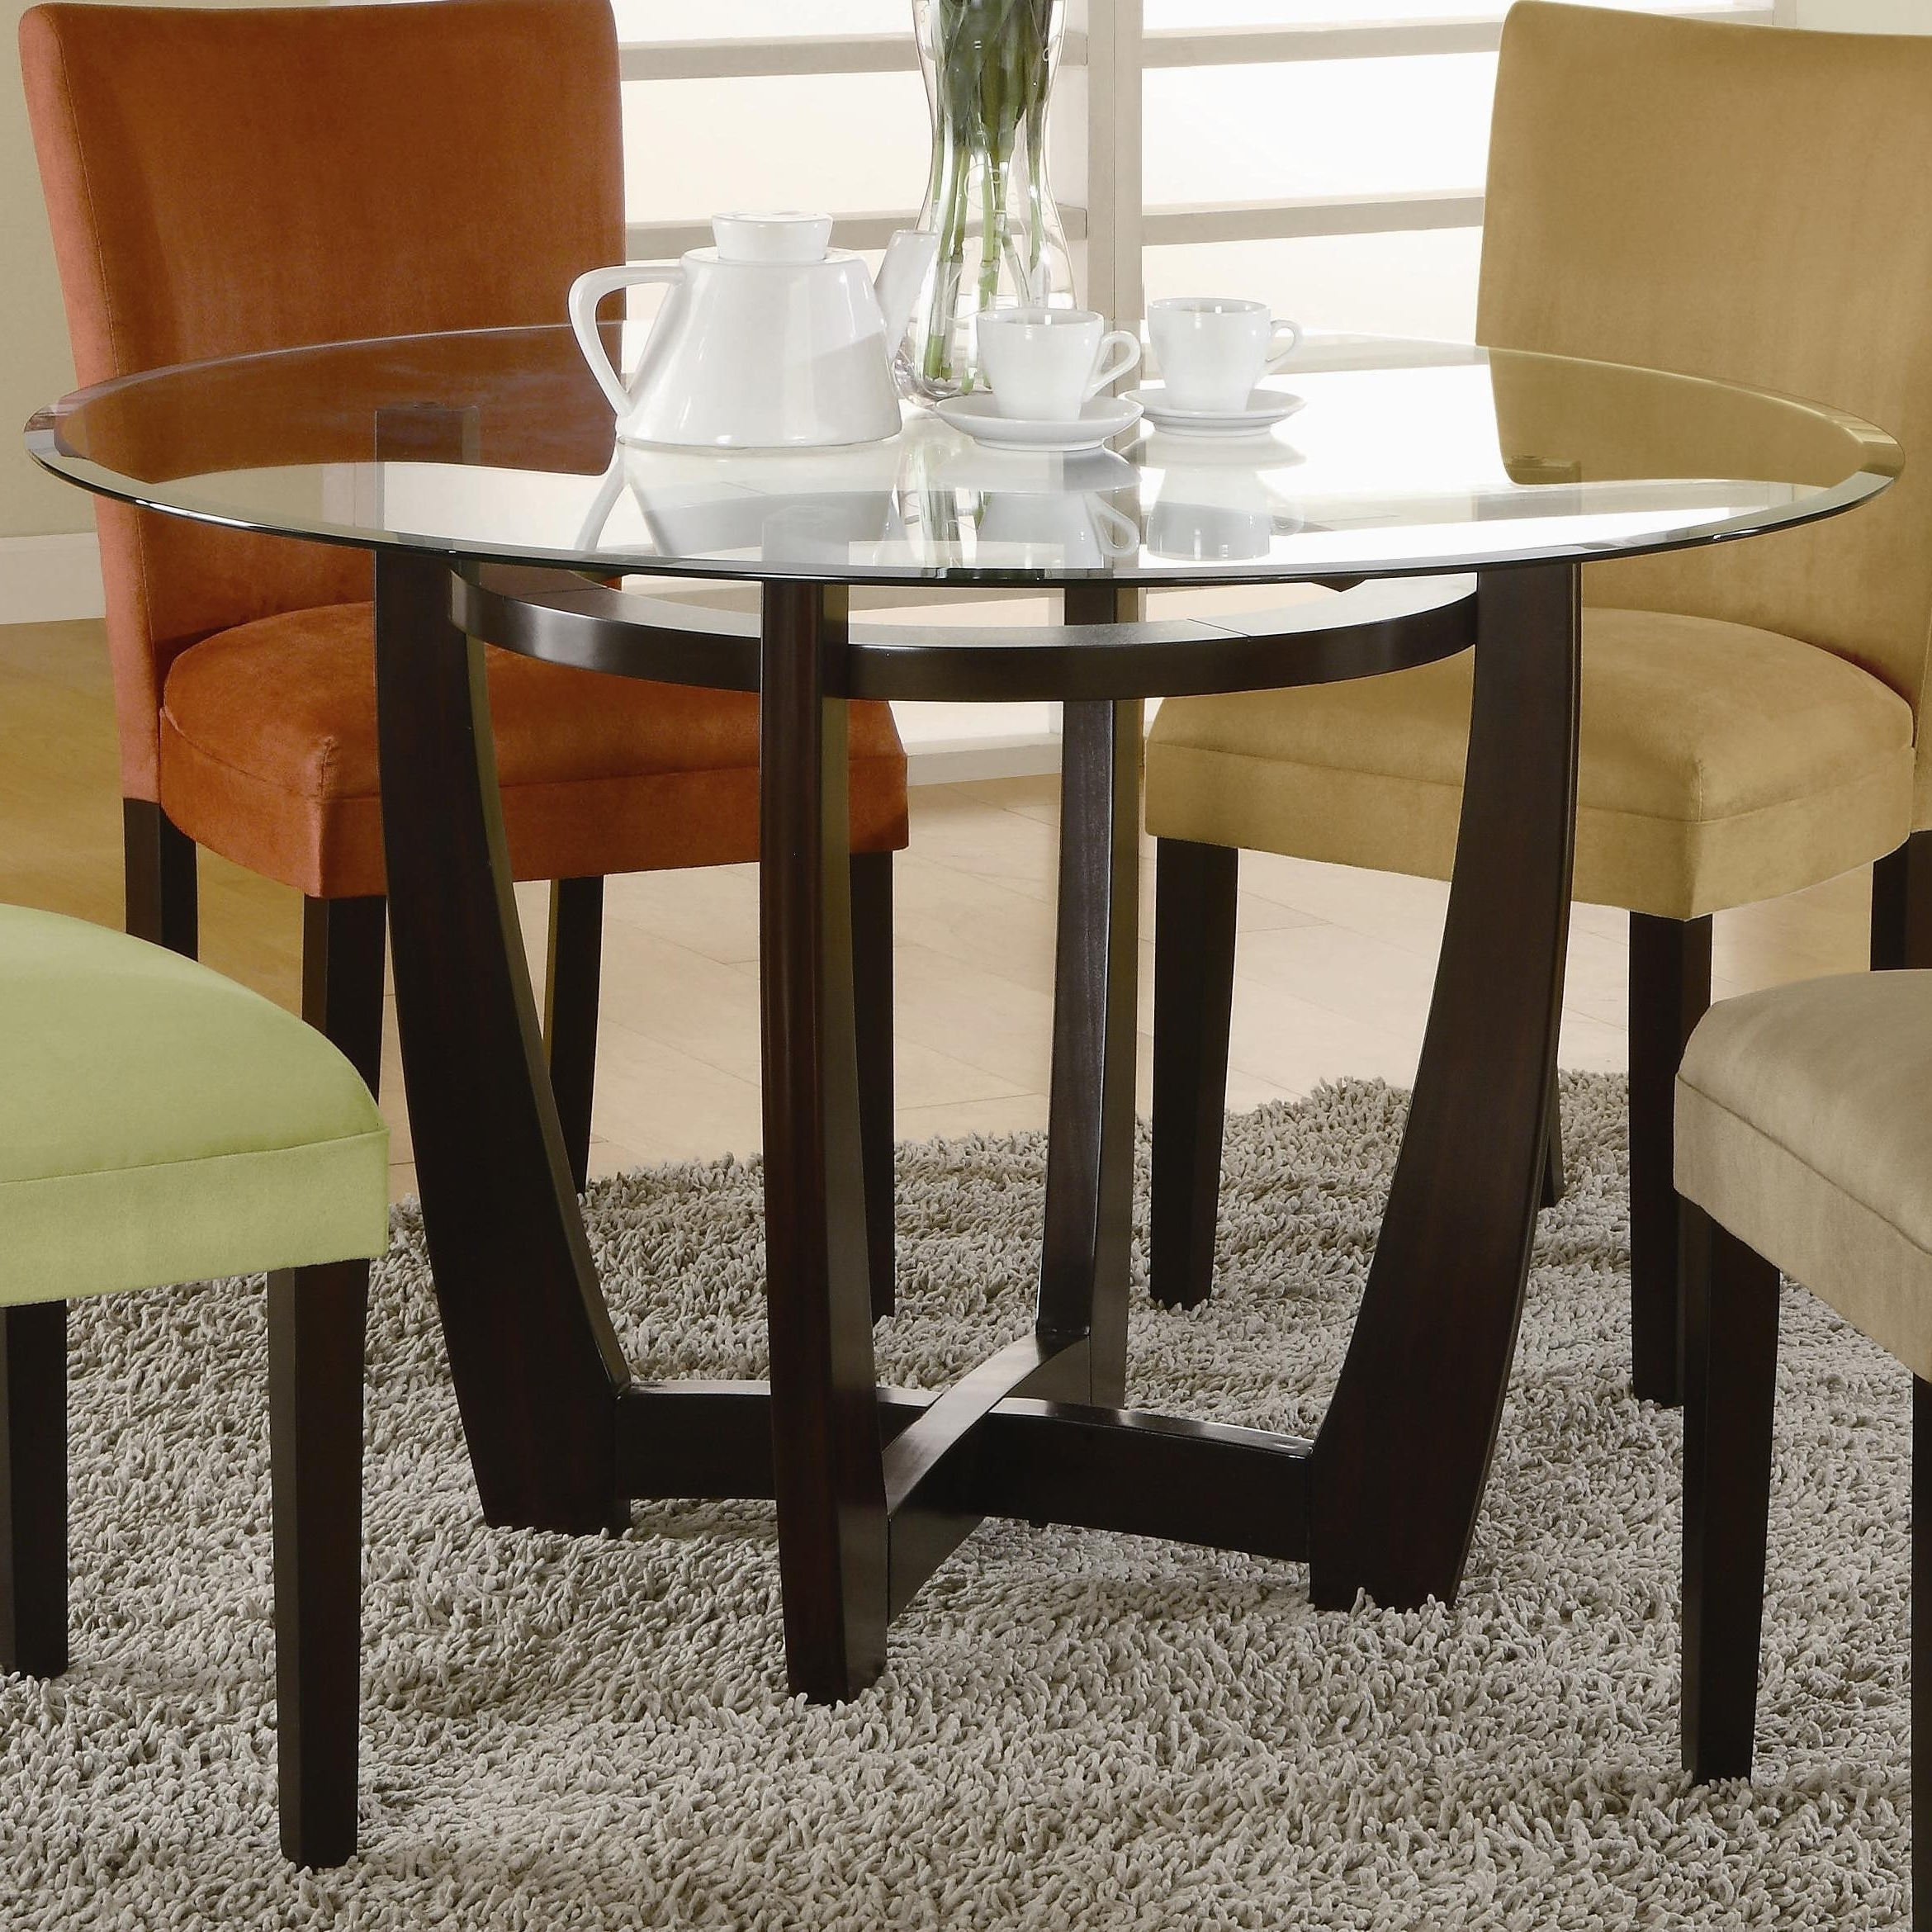 Small Dining Set Chrome Chairs Glass And Room Hideaway Rovigo For Most Current Round Black Glass Dining Tables And 4 Chairs (View 23 of 25)